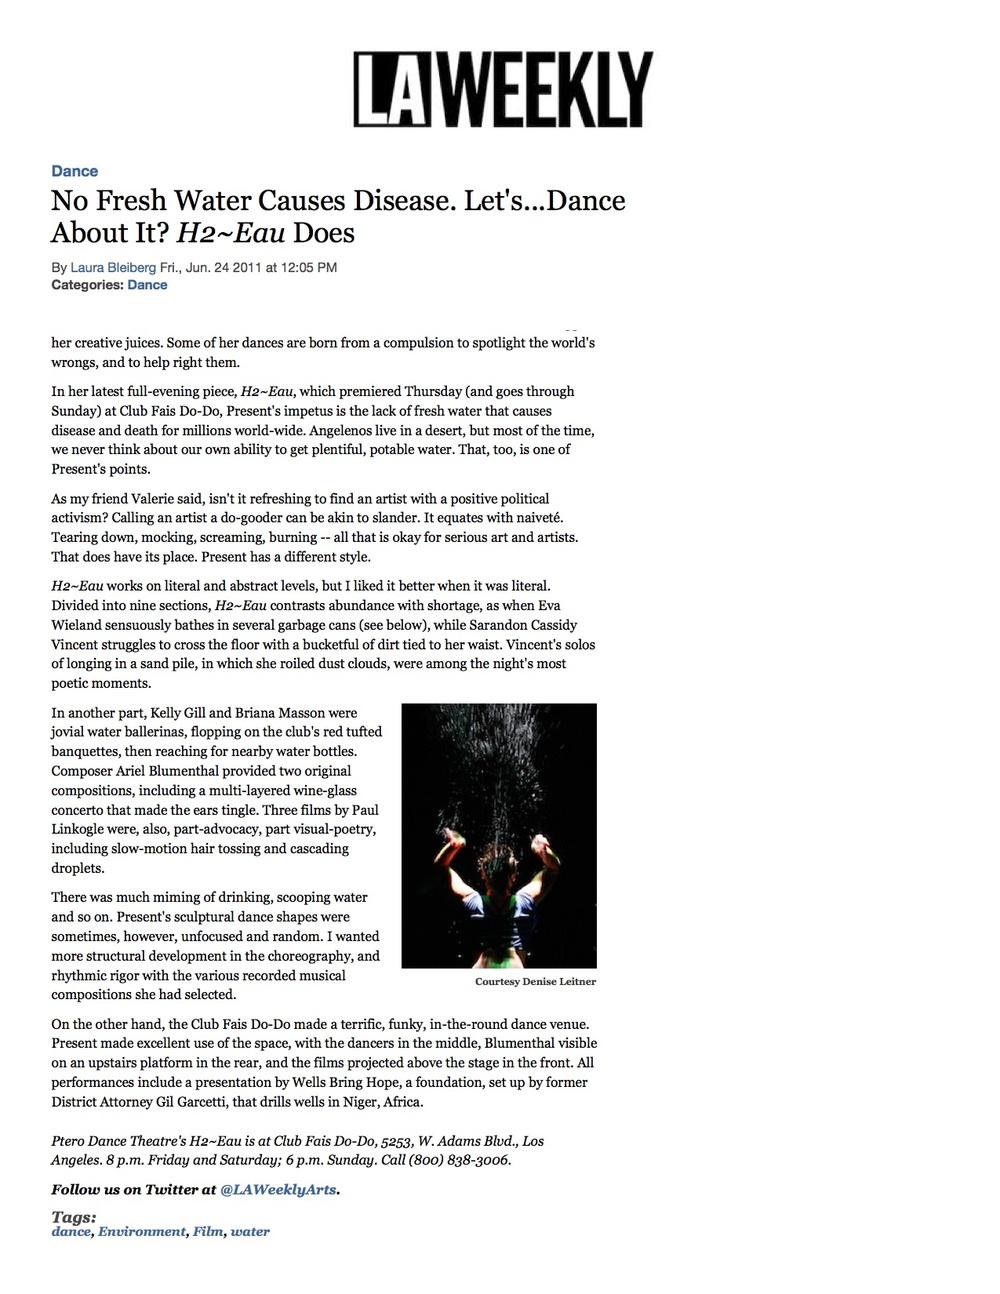 Composer Ariel Blumenthal Review: H2Eau featuring H2Awe for water piano LA Weekly